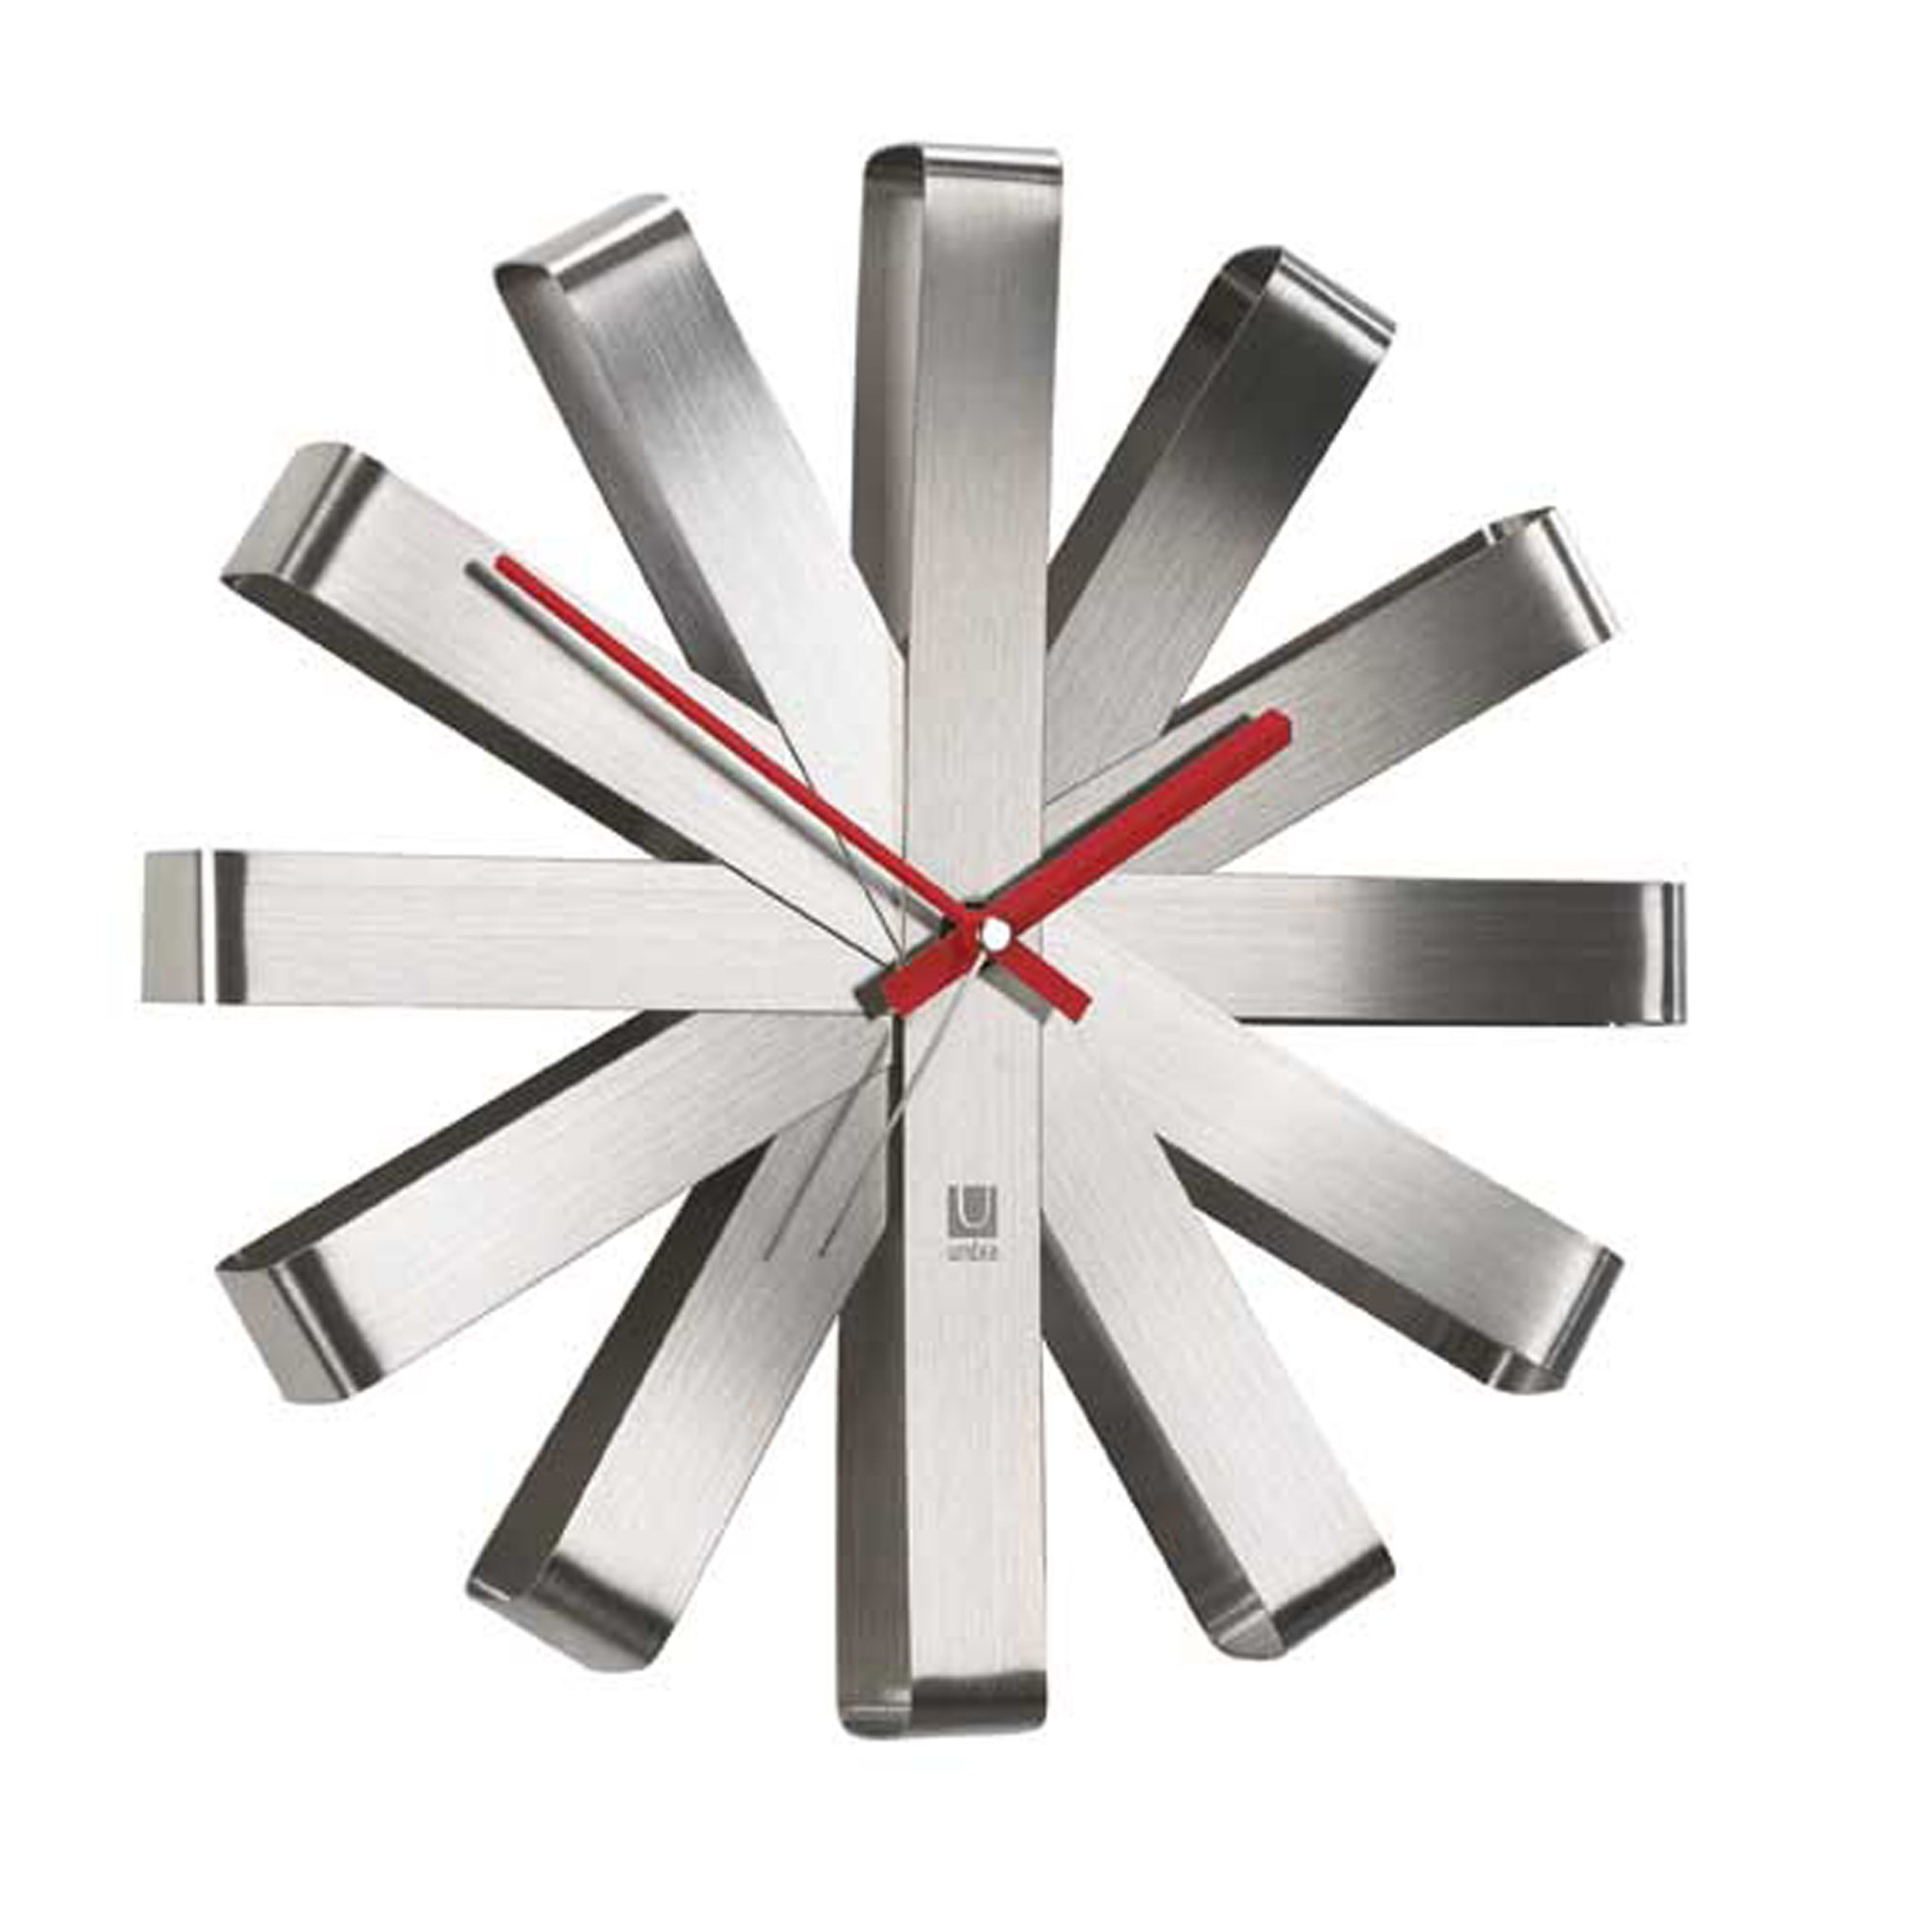 Umbra Ribbon Modern Wall Clock, Battery Operated Quartz Movement, Silent Non Ticking Wall Clocks, Stainless Steel